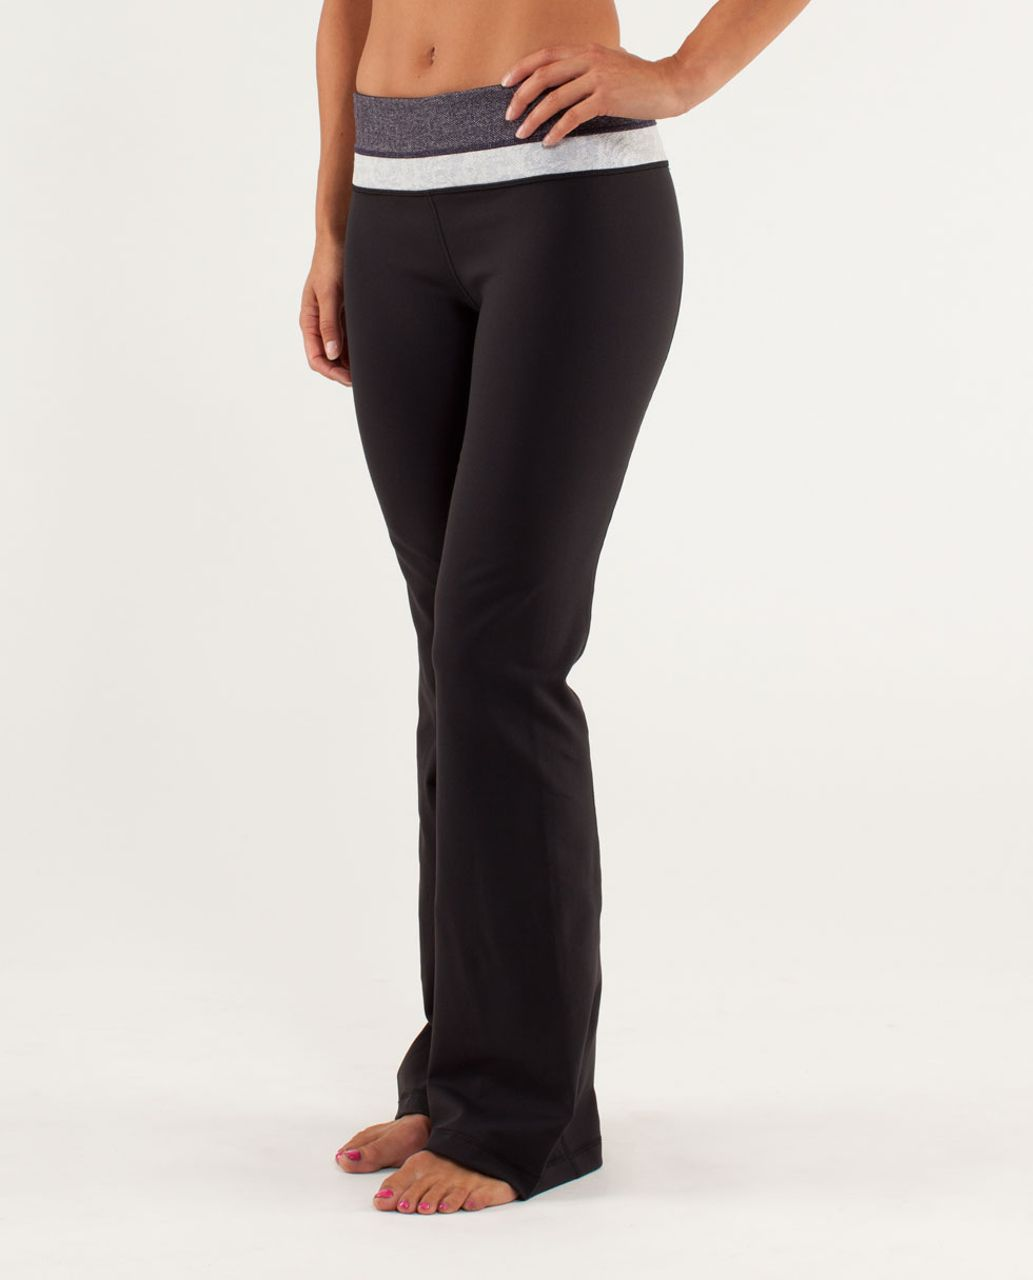 Lululemon Groove Pant *Slim (Regular) - Black Swan / Herringbone Black Swan / Rose Herringbone Polar Cream